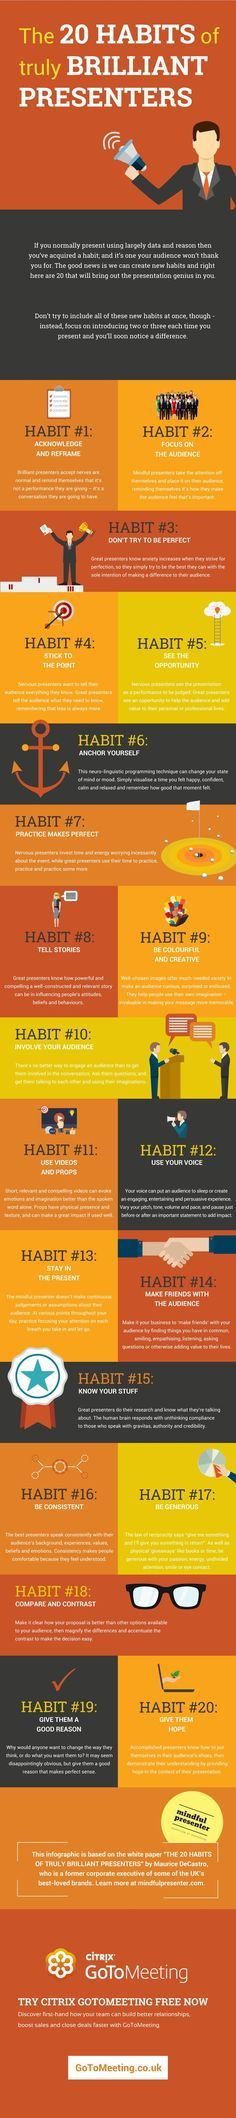 20 Habits οf Truly Brilliant Presenters Infographic - http://elearninginfographics.com/20-habits-%ce%bff-truly-brilliant-presenters-infographic/